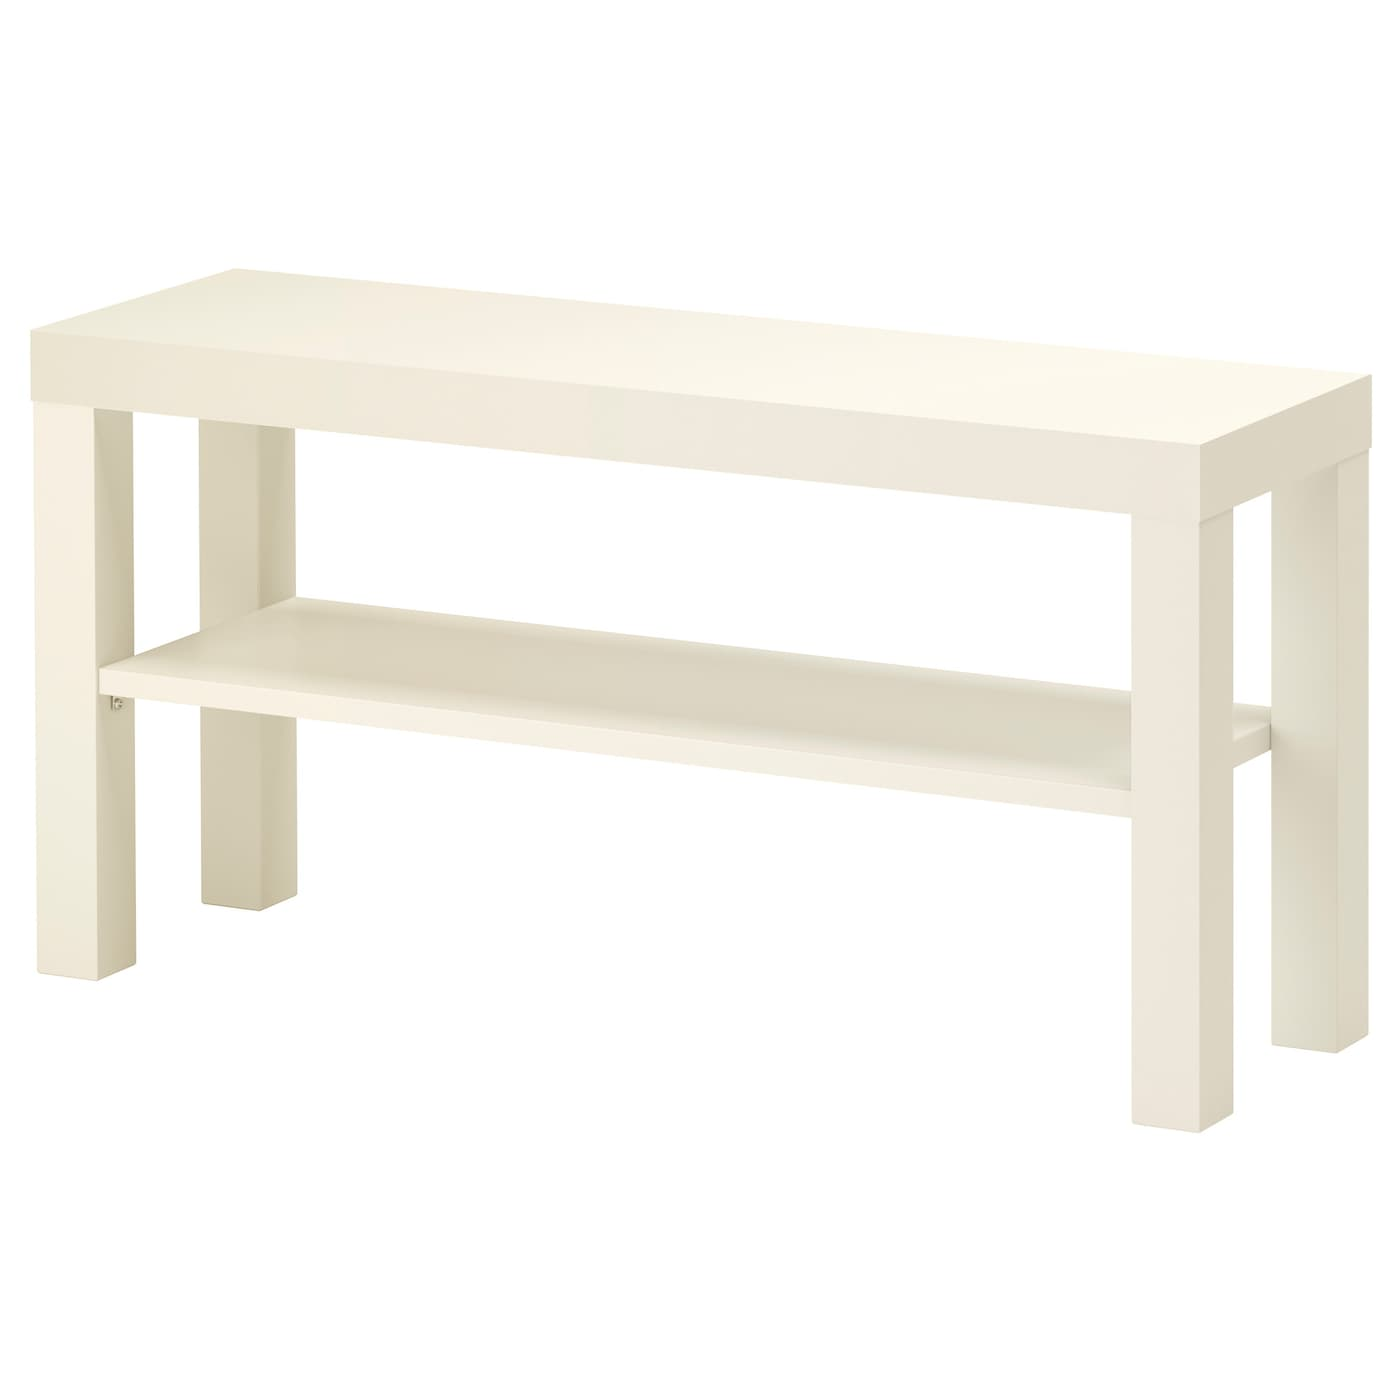 lack tv bench white 90x26 cm ikea. Black Bedroom Furniture Sets. Home Design Ideas